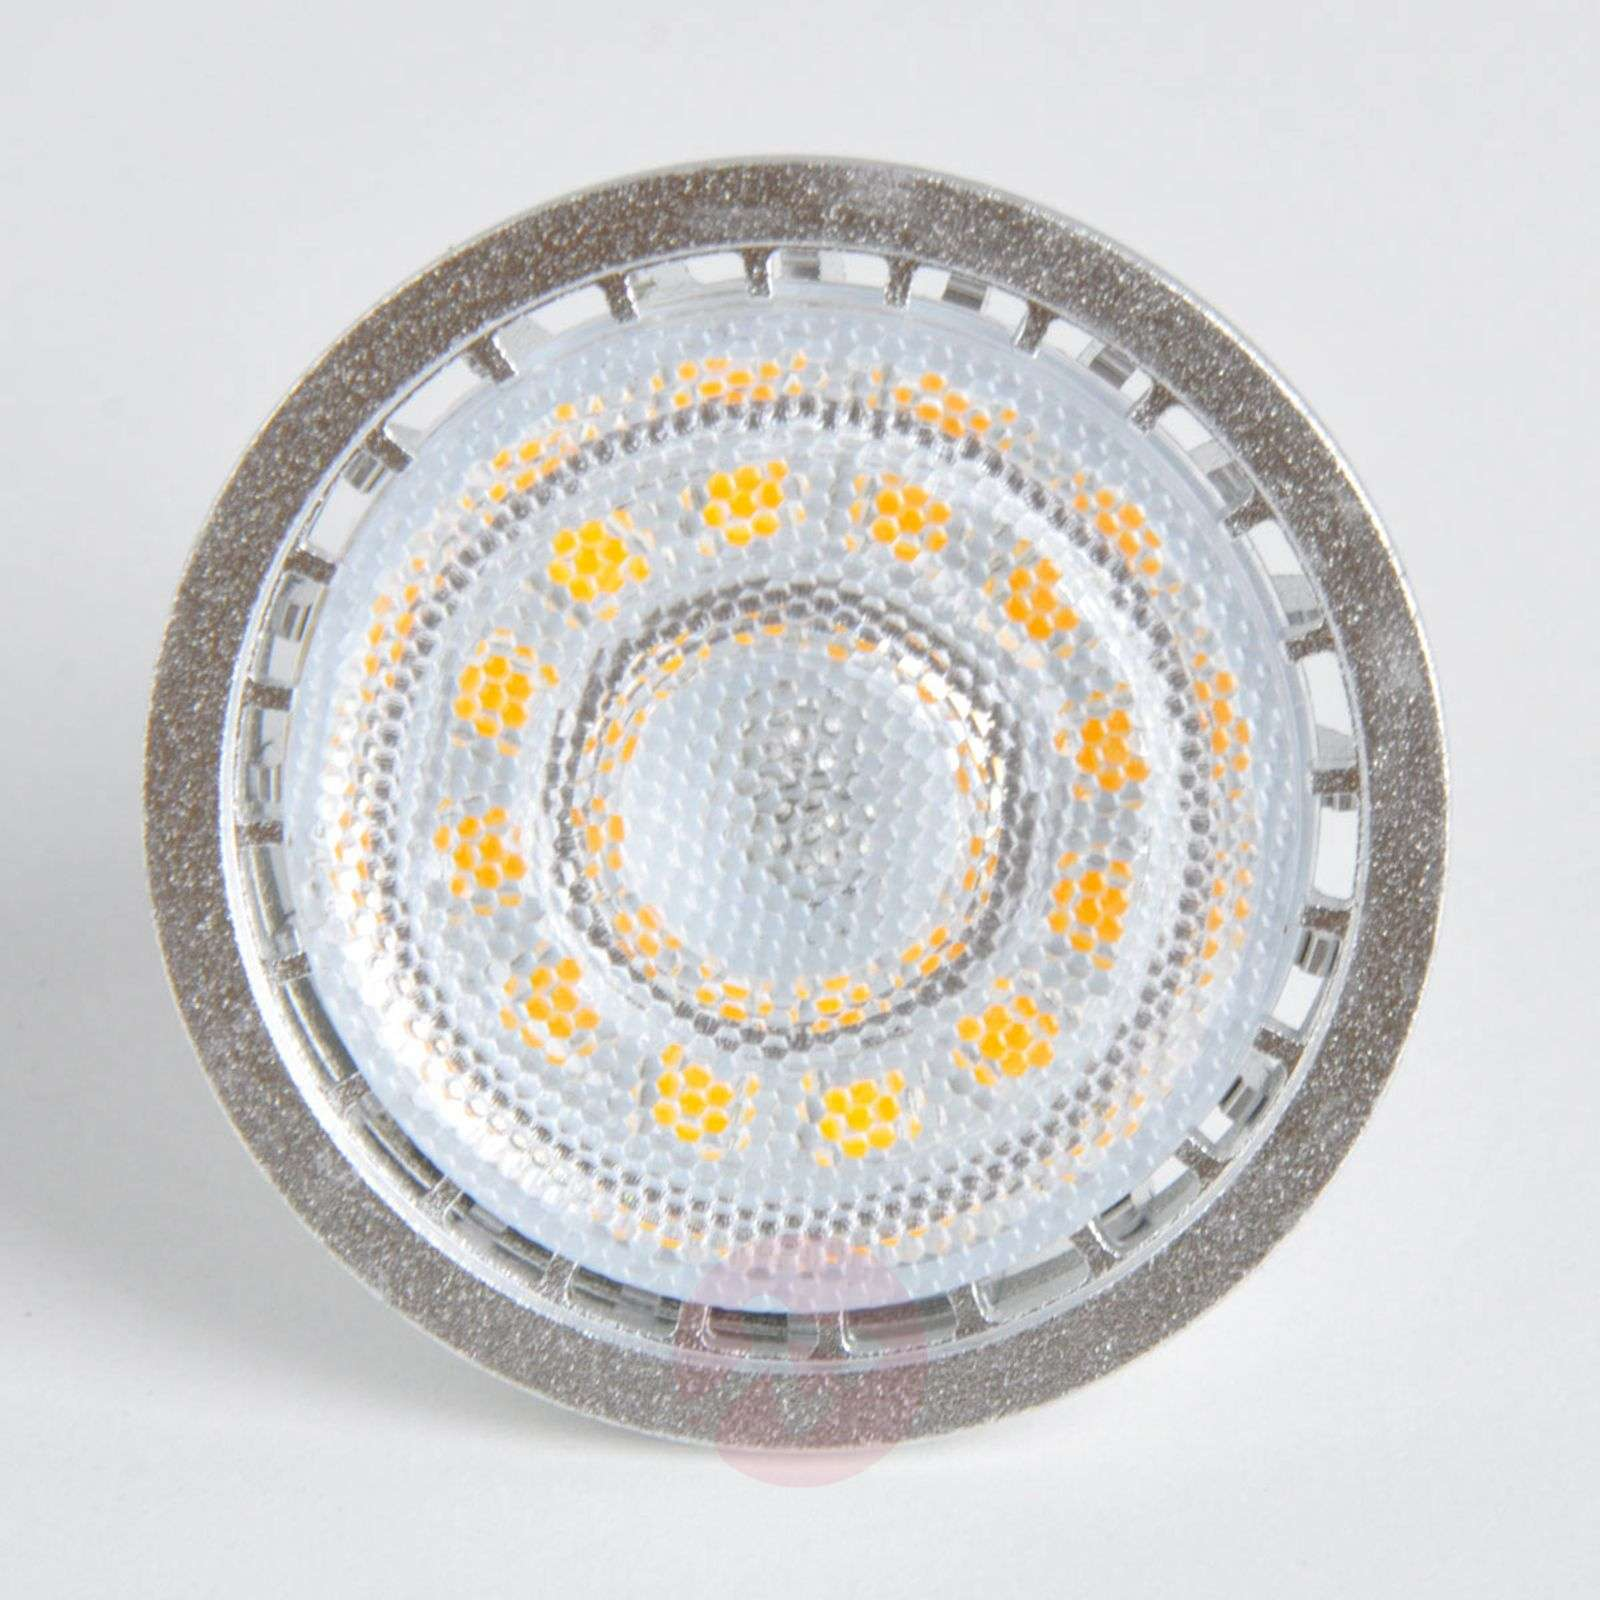 LED à réflecteur GU10 5W 830 55degree-9639040-01